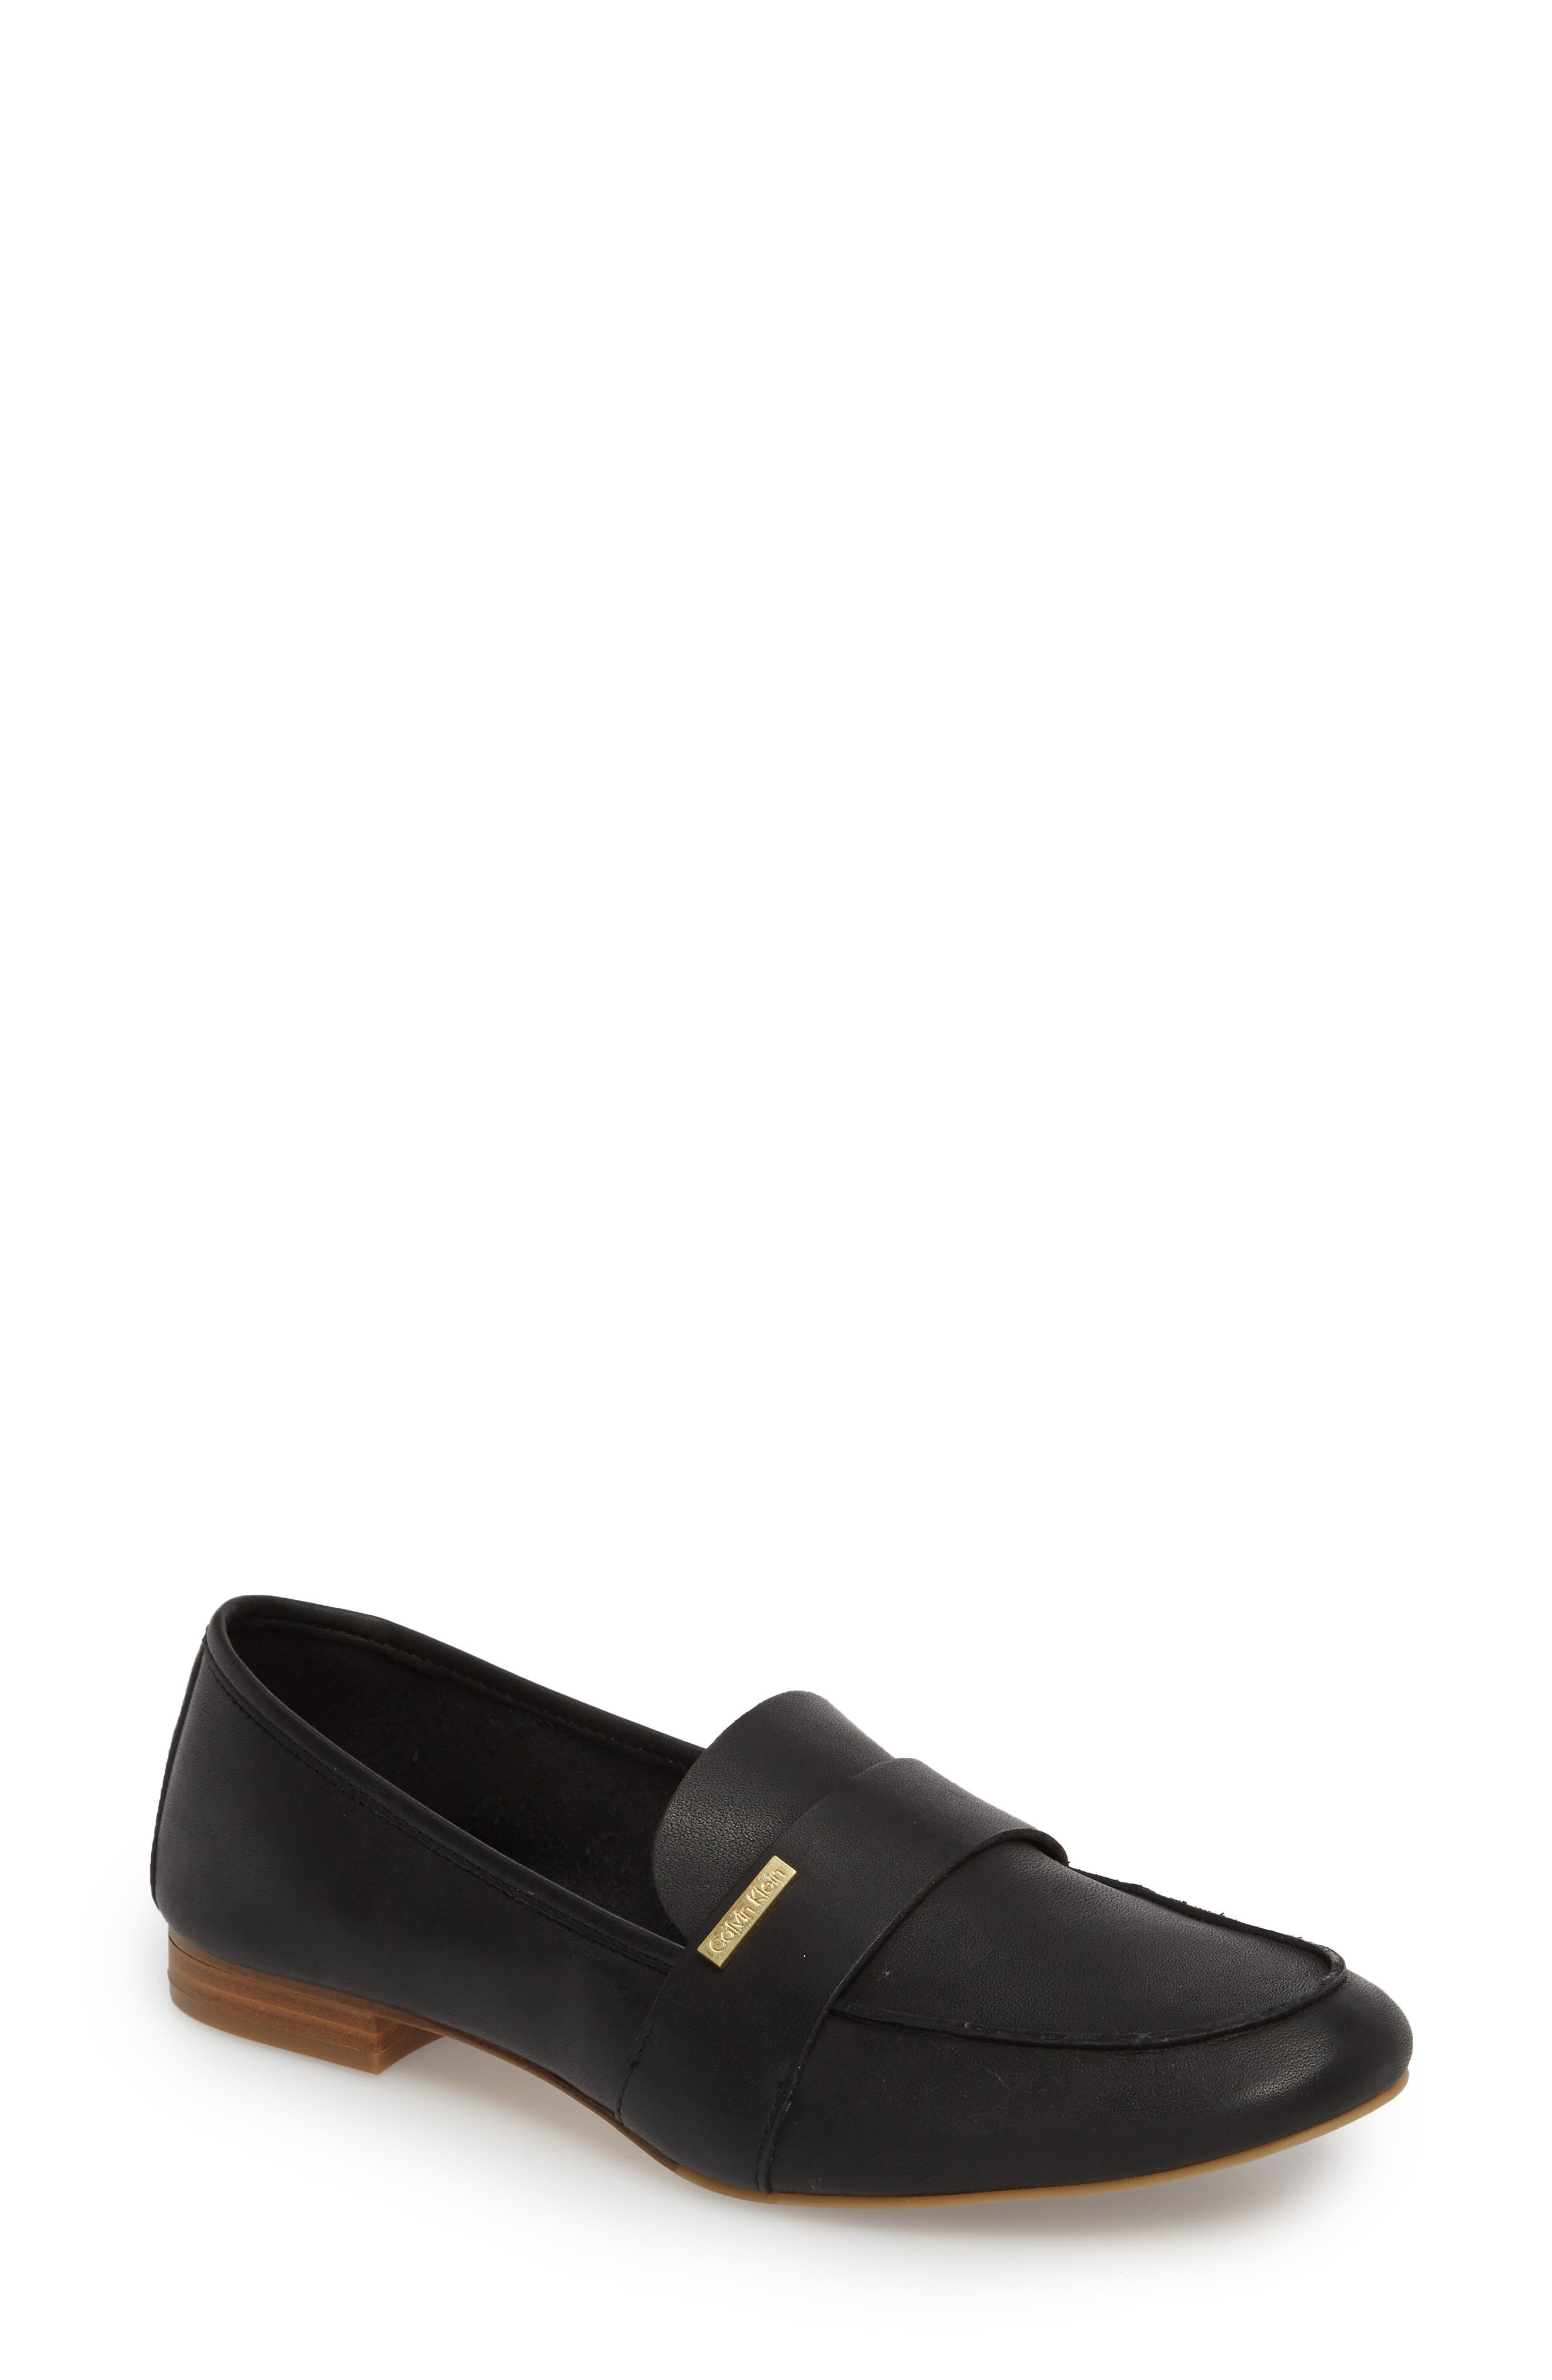 Cemmie Loafer,                         Main,                         color, BLACK LEATHER